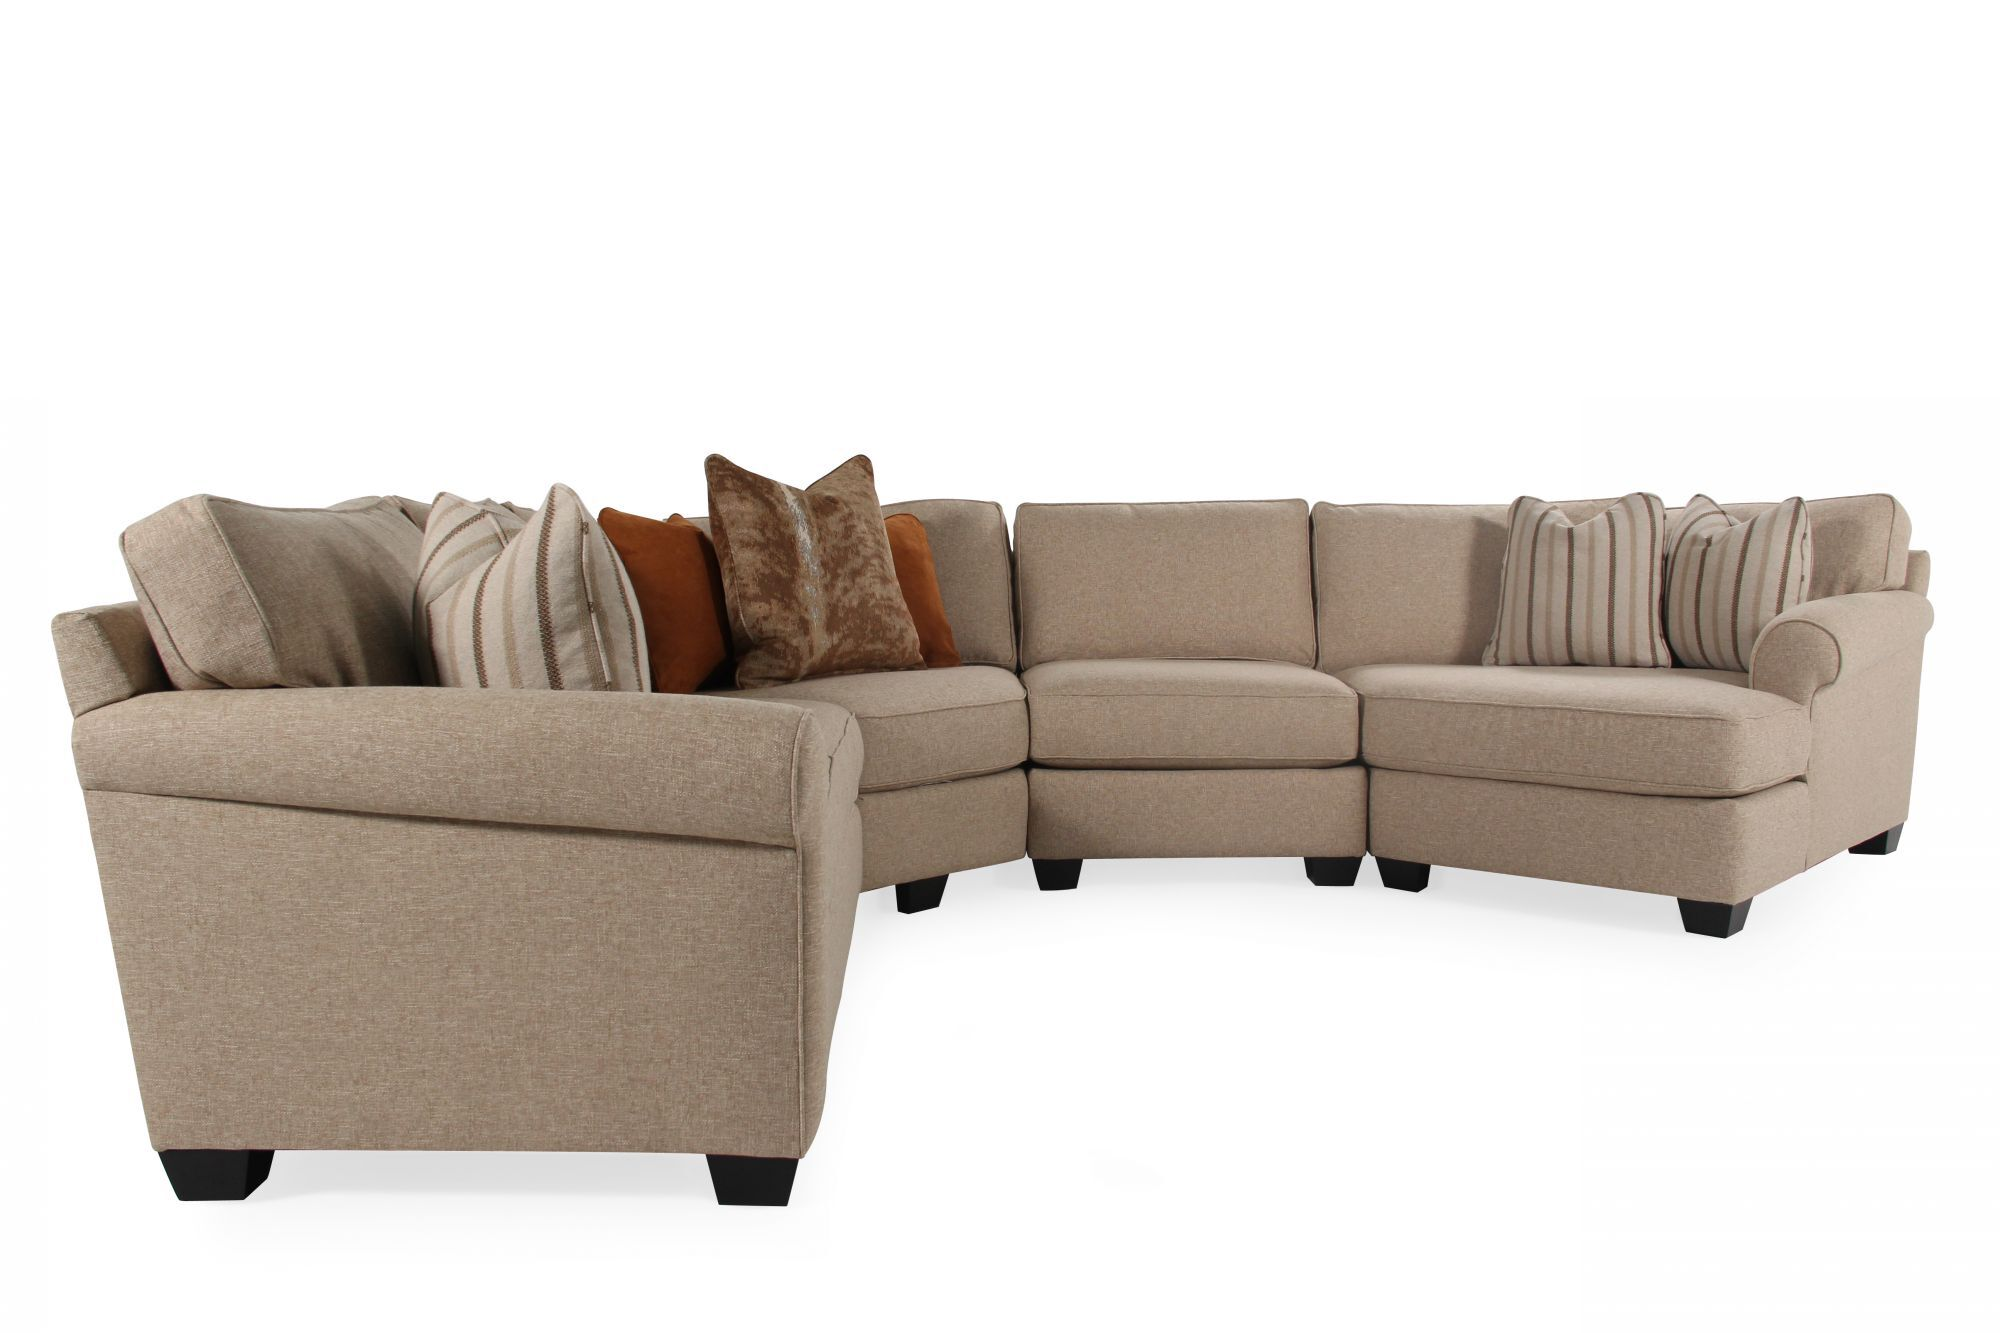 jonathan louis benjamin sectional sofa natuzzi uk prices four piece contemporary in sand mathis